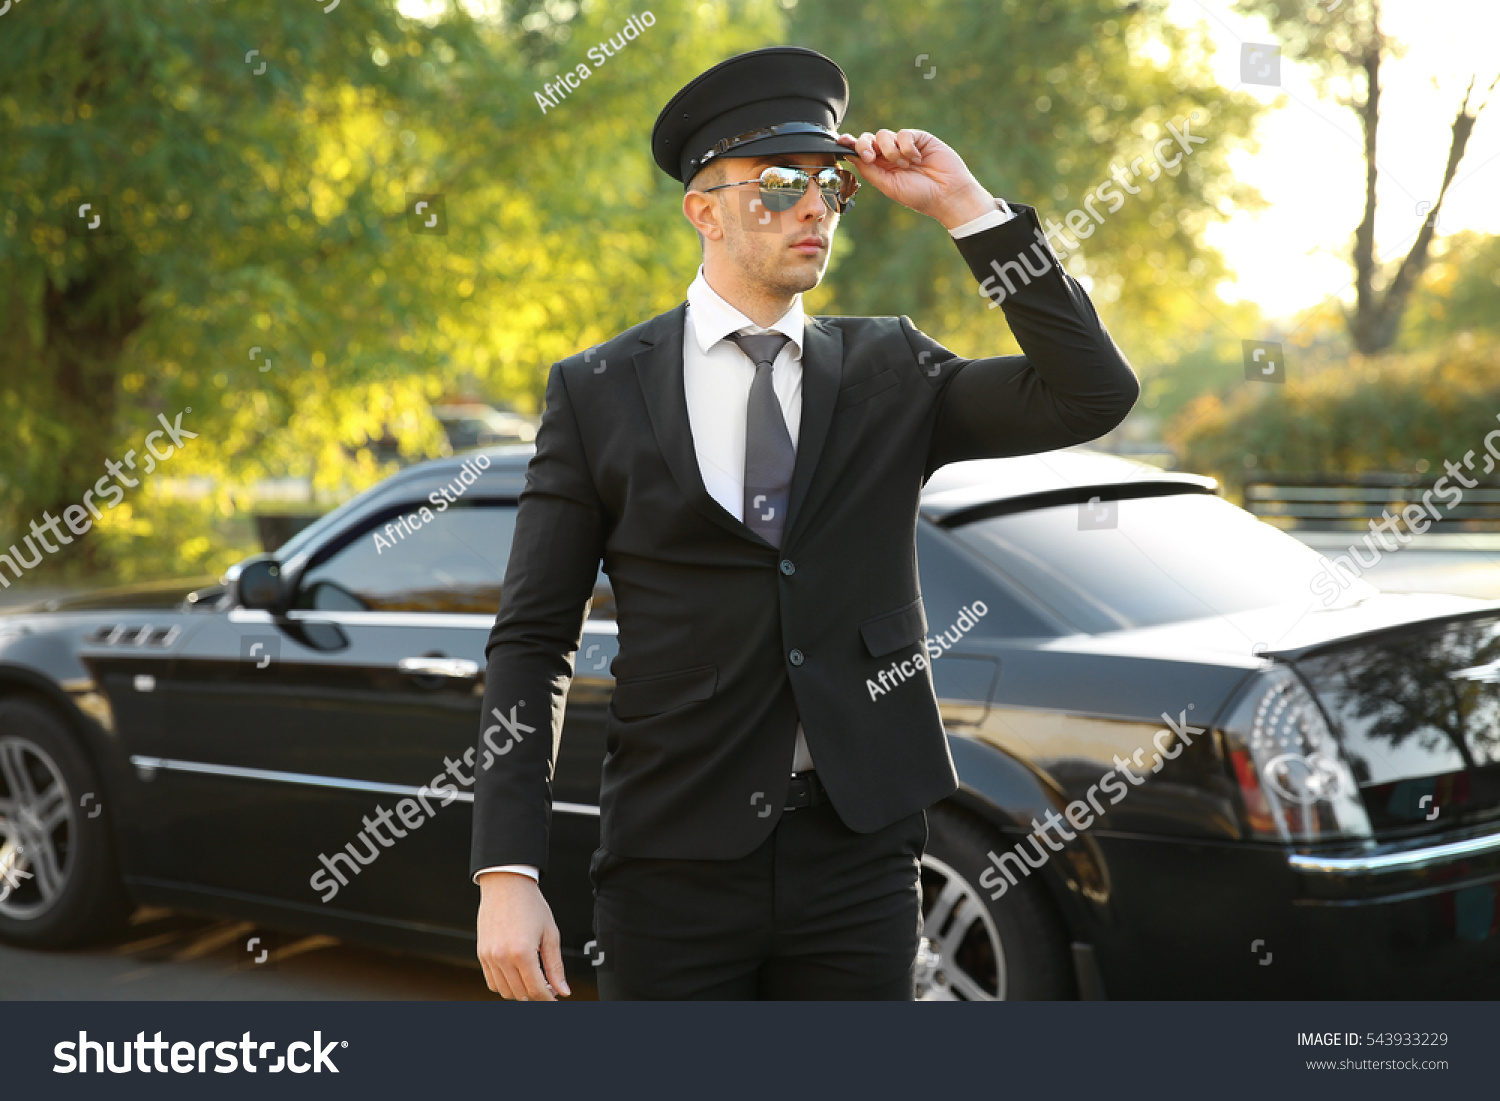 Image result for Young Chauffeur picture